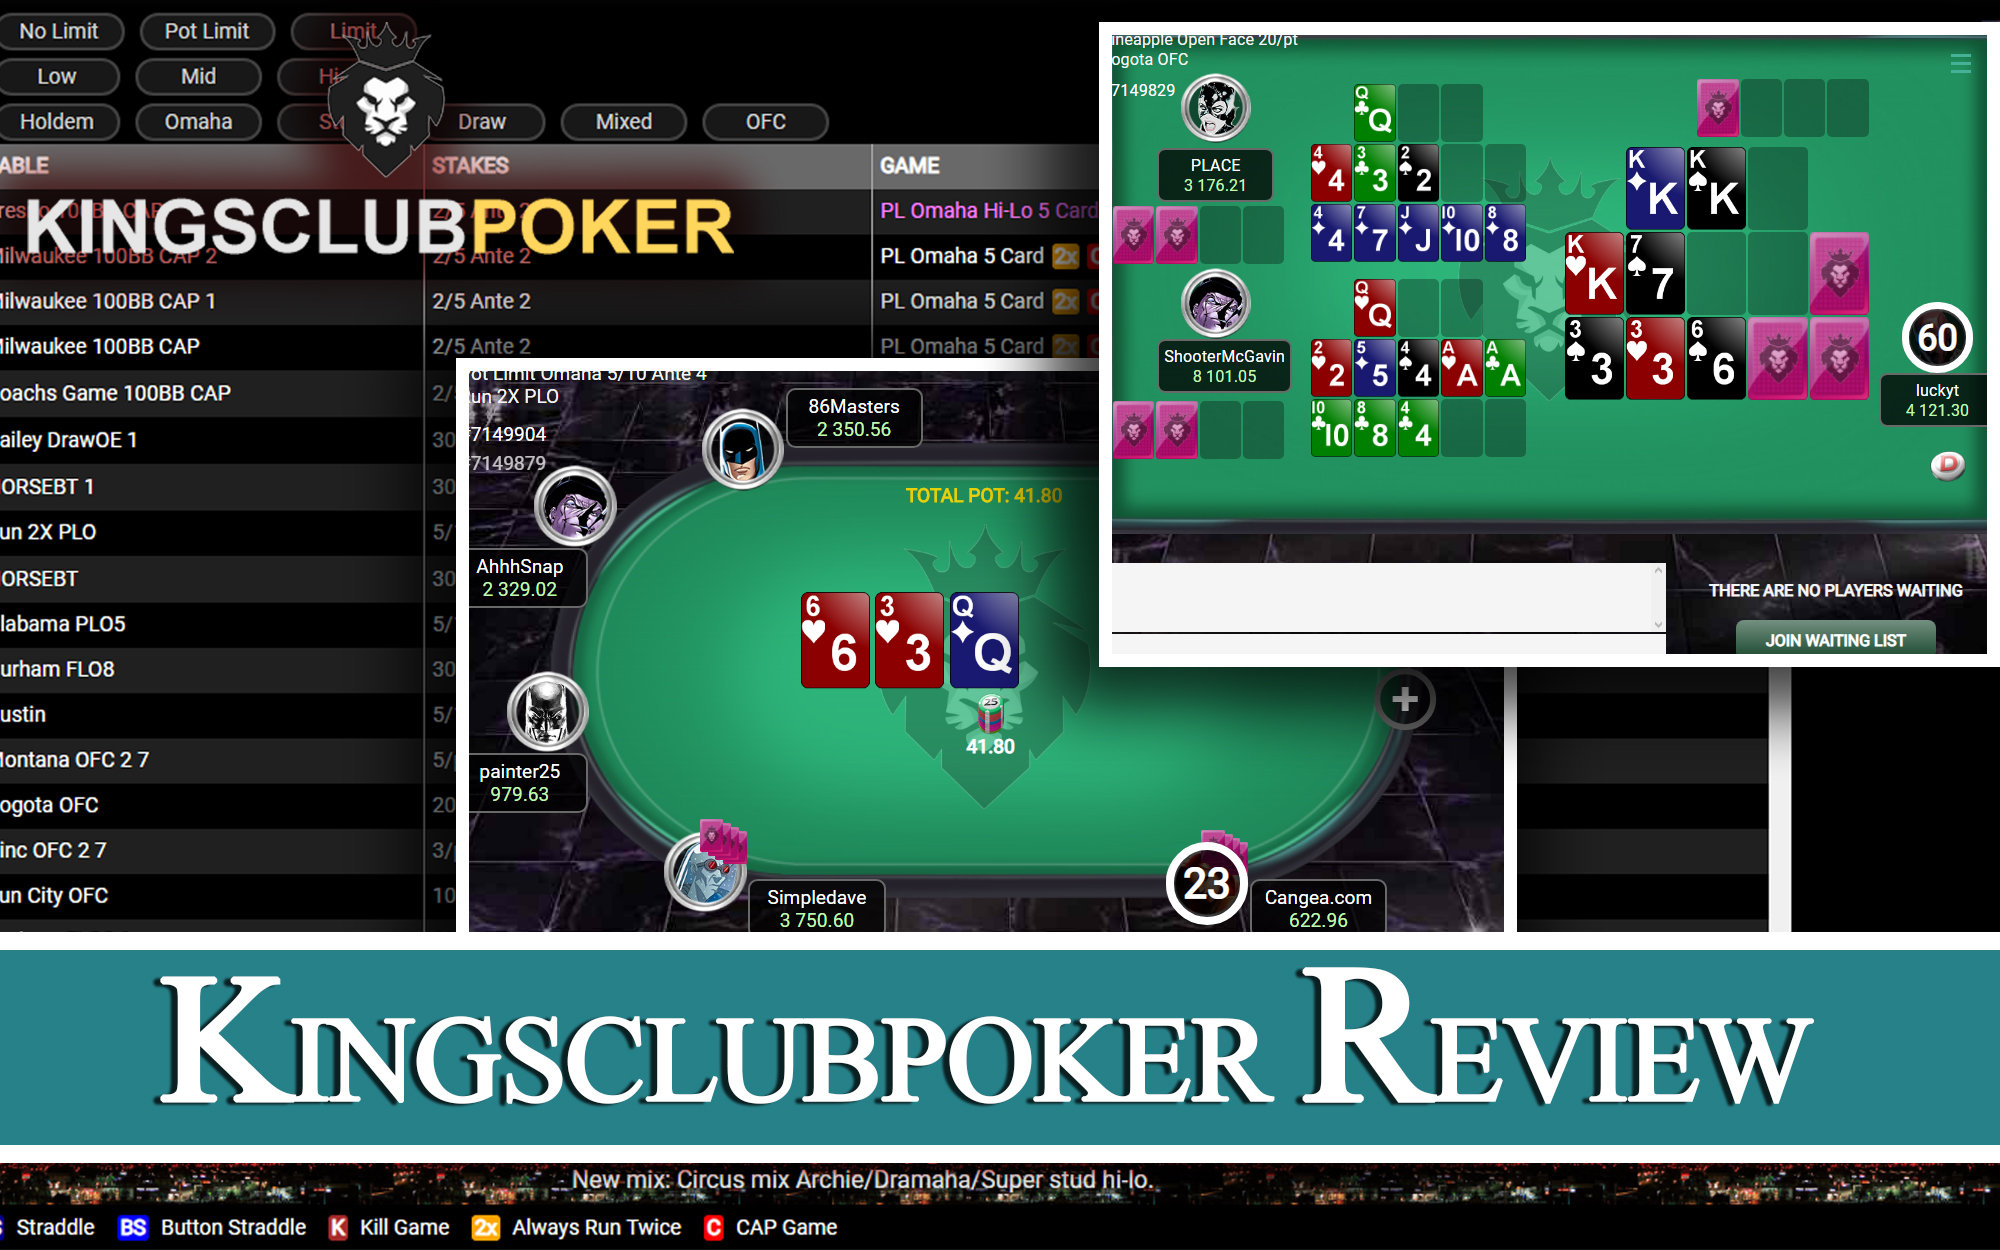 Kingsclubpoker review